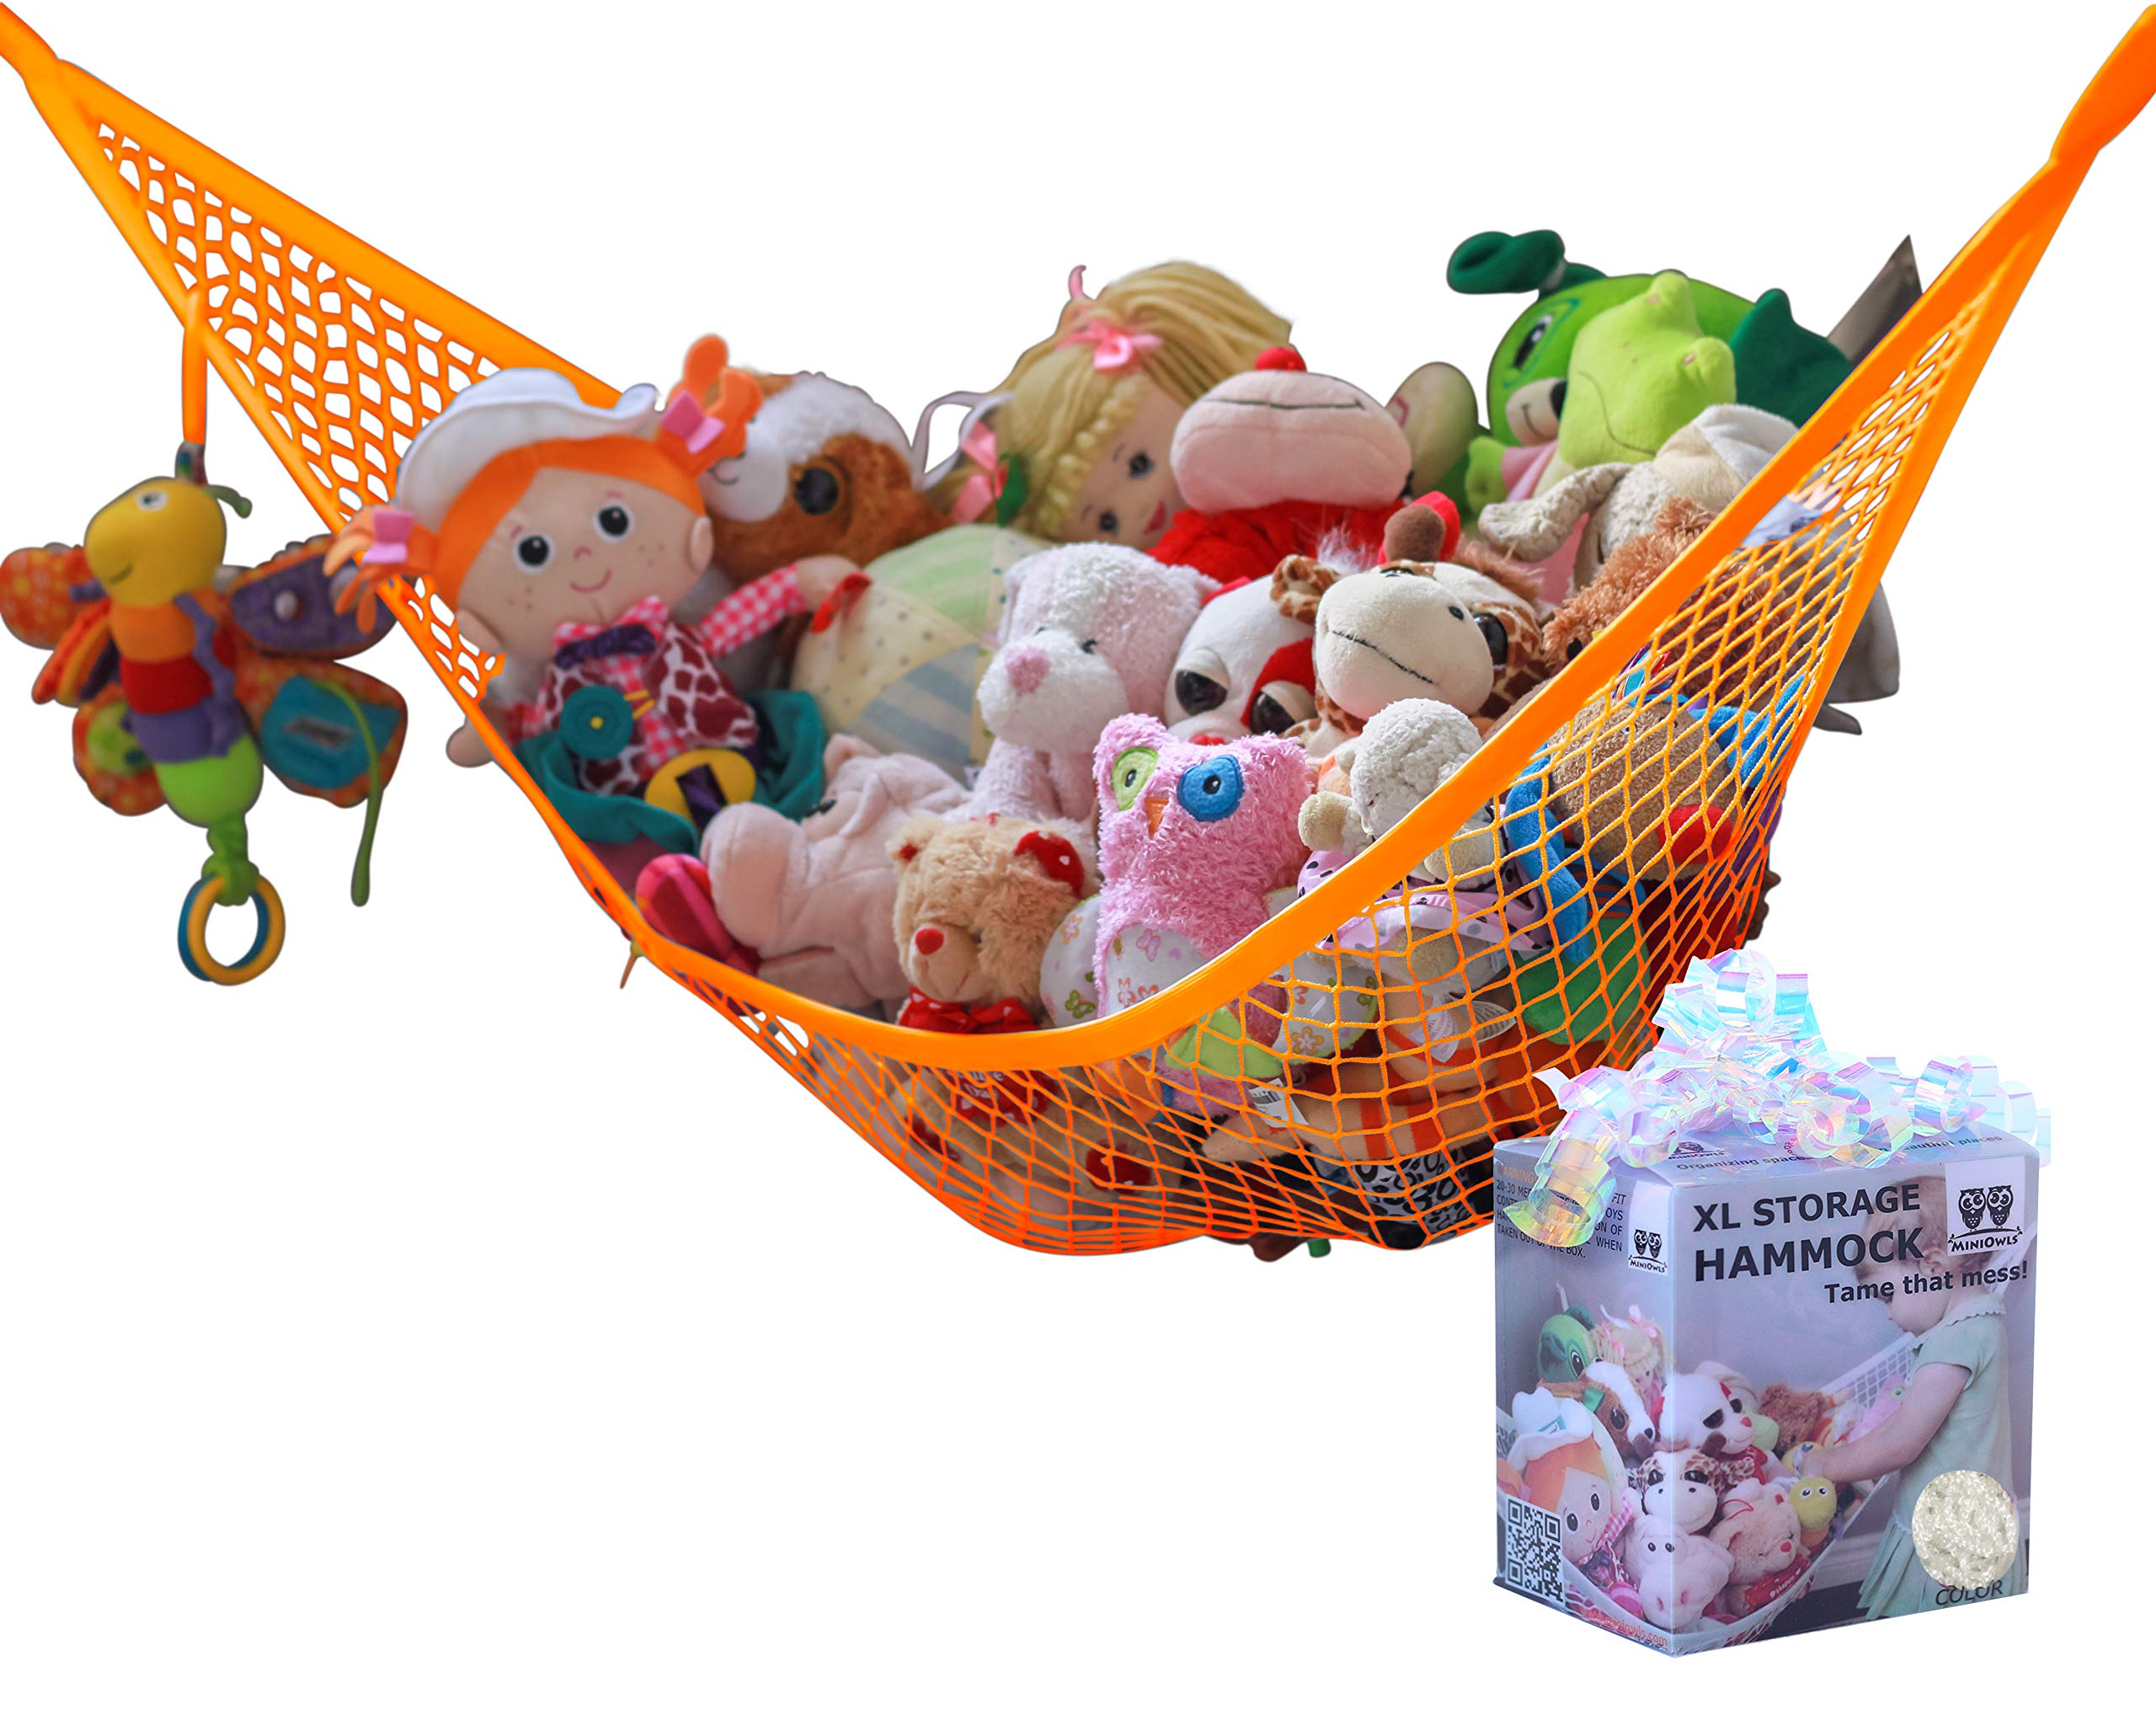 MiniOwls Storage Hammock Stuffed Toys Organizer - Fits 30-40 Plush Animals. Great Gift for Boys and Girls. Instead of Bins and Toy Chest – Displays Teddies Easily (Orange, X-Large)